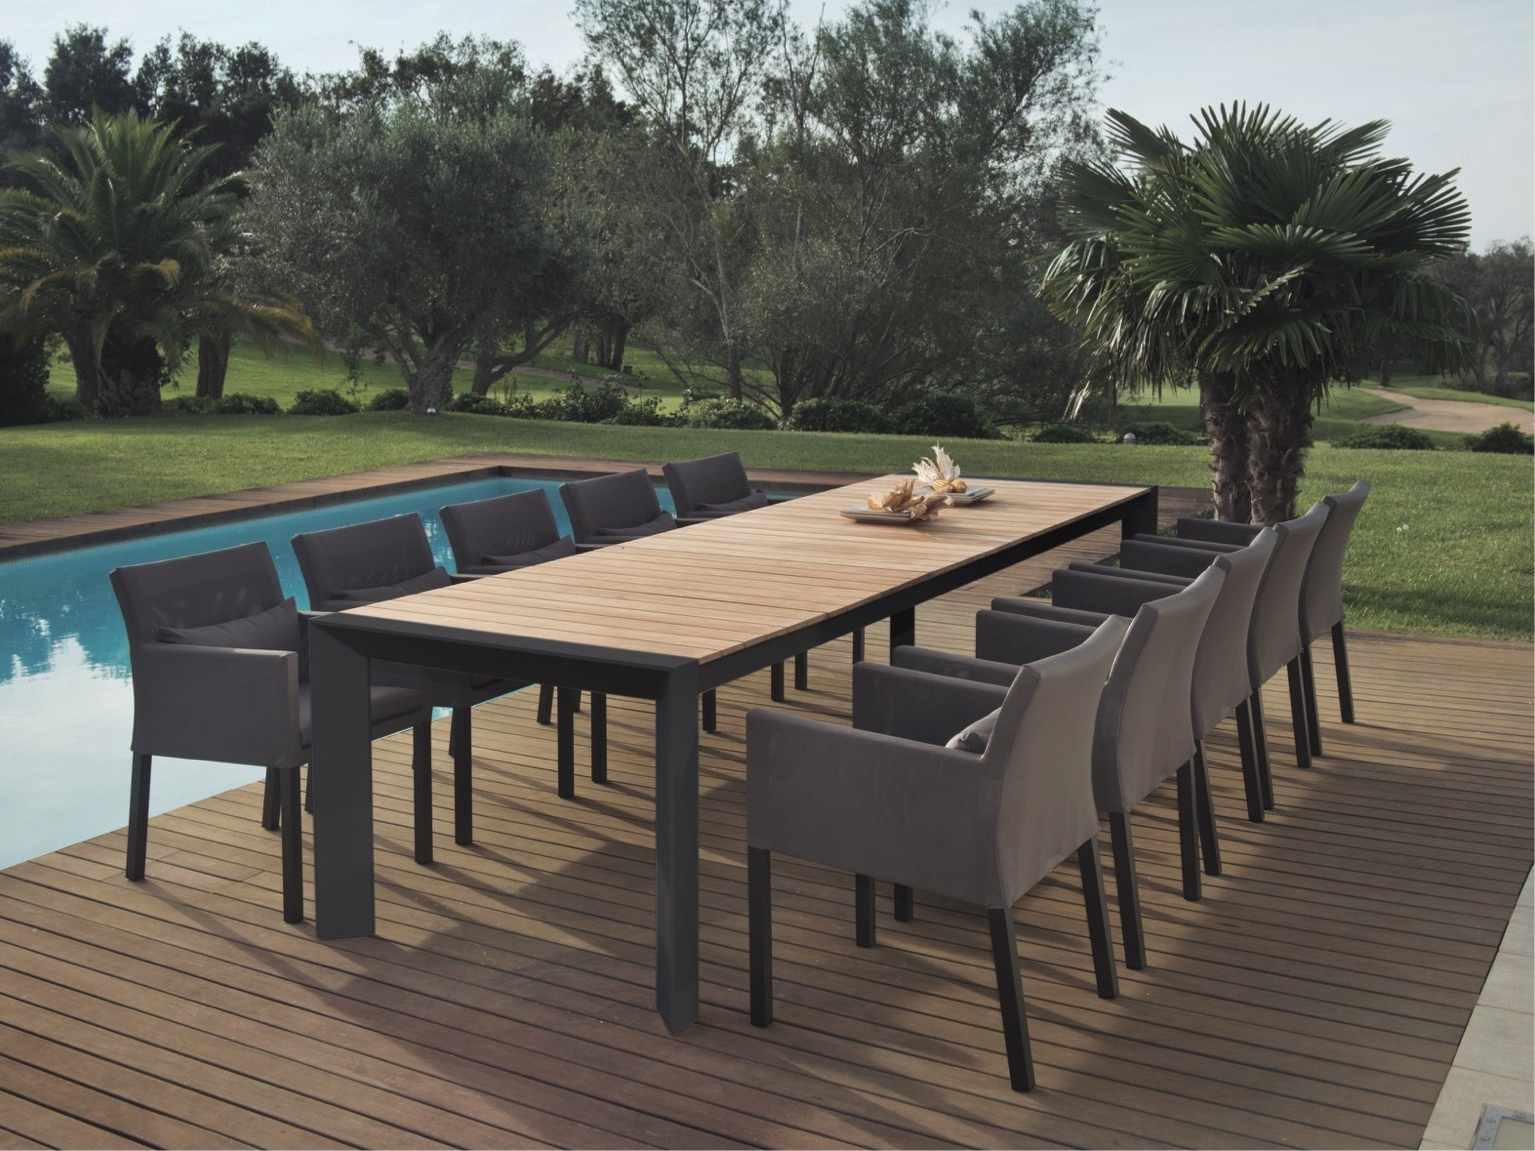 Outdoor Extendable Dining Tables Intended For Well Liked Alchemy Teak Dining Table – Couture Outdoor (View 7 of 25)